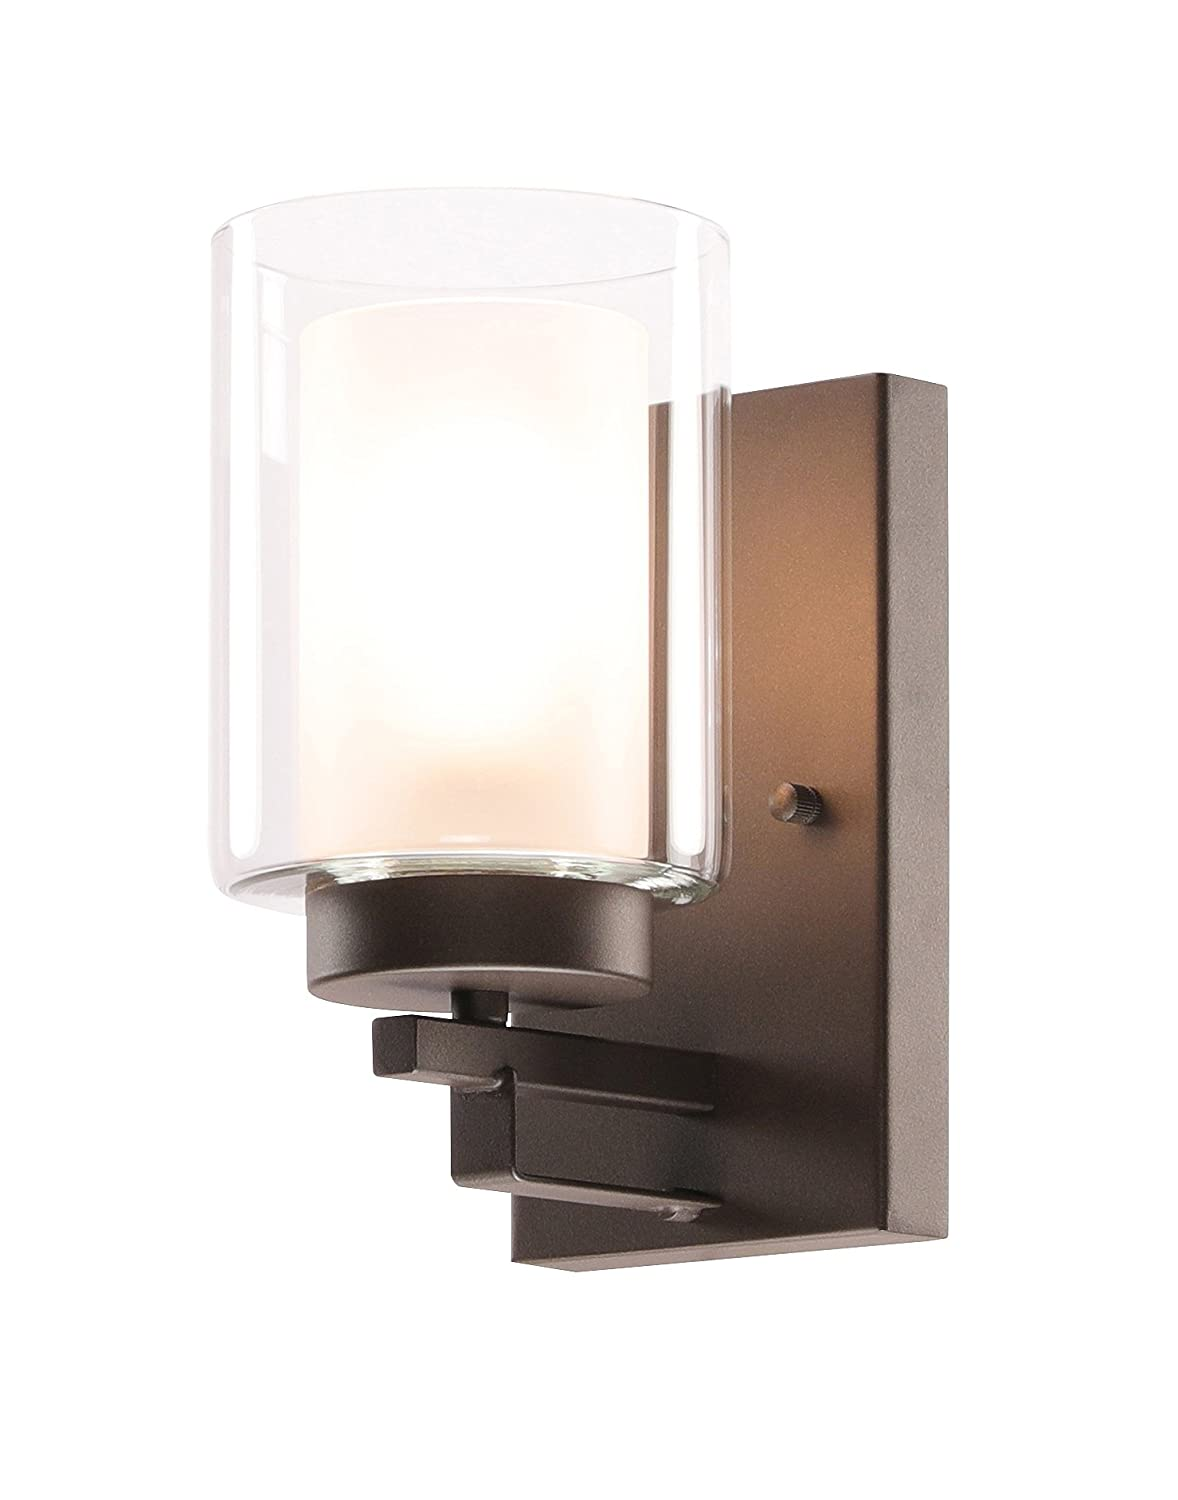 Wall Light 1 Light Bathroom Vanity Lighting with Dual Glass Shade in Dark Bronze Indoor Wall Mount Light XiNBEi-Lighting XB-W1195-1-DB